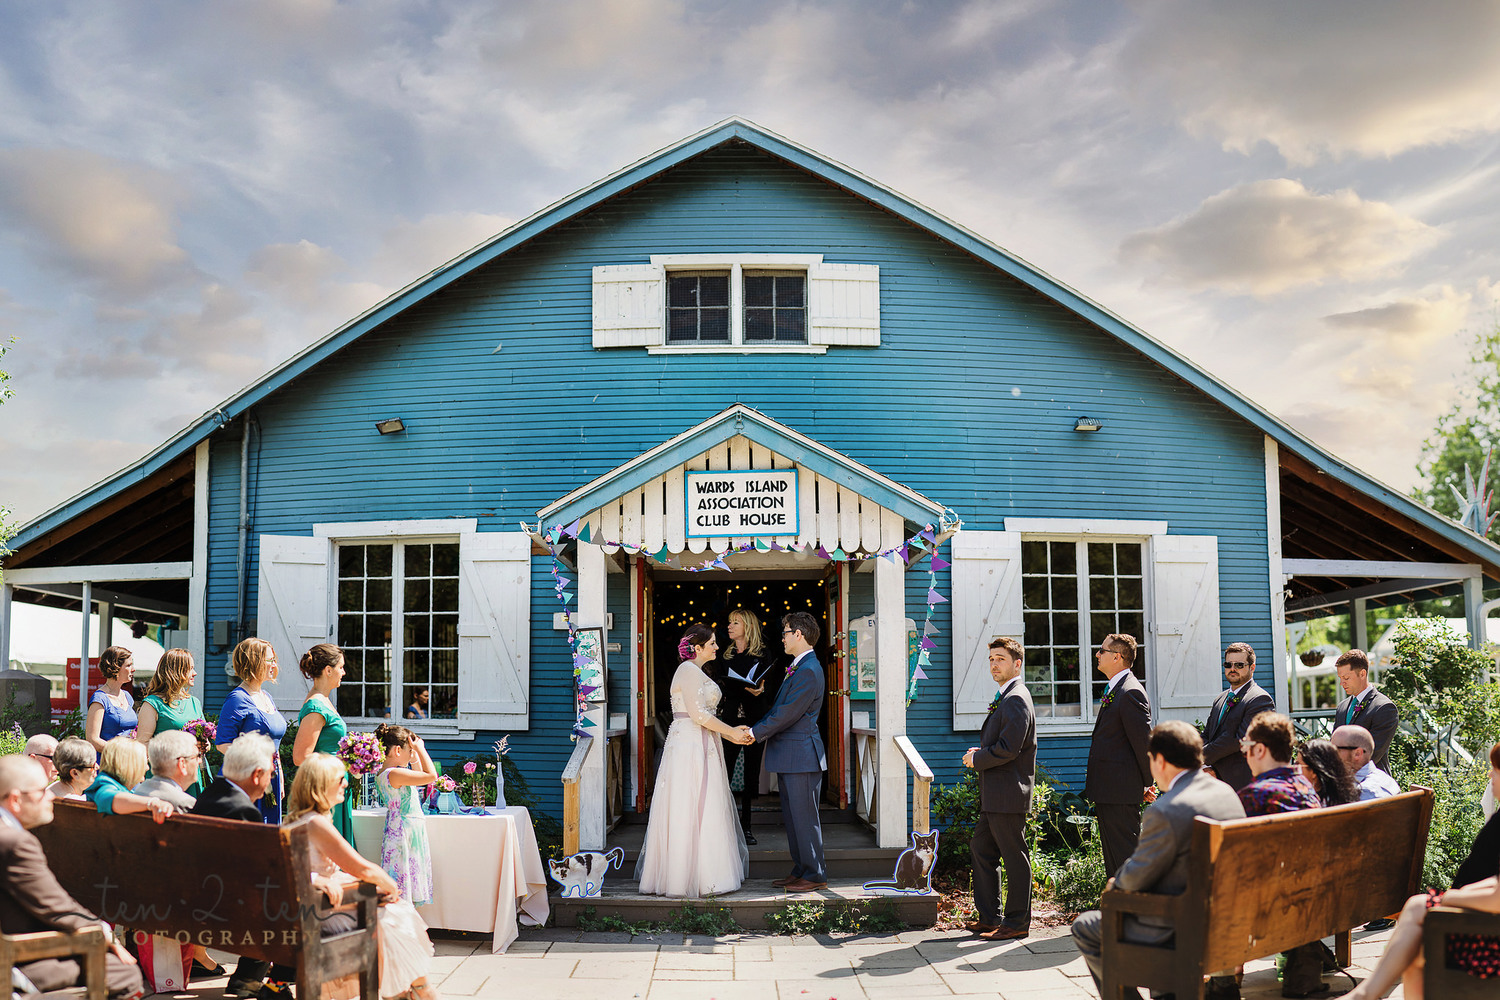 RUSTIC WEDDING VENUES IN THE GTA